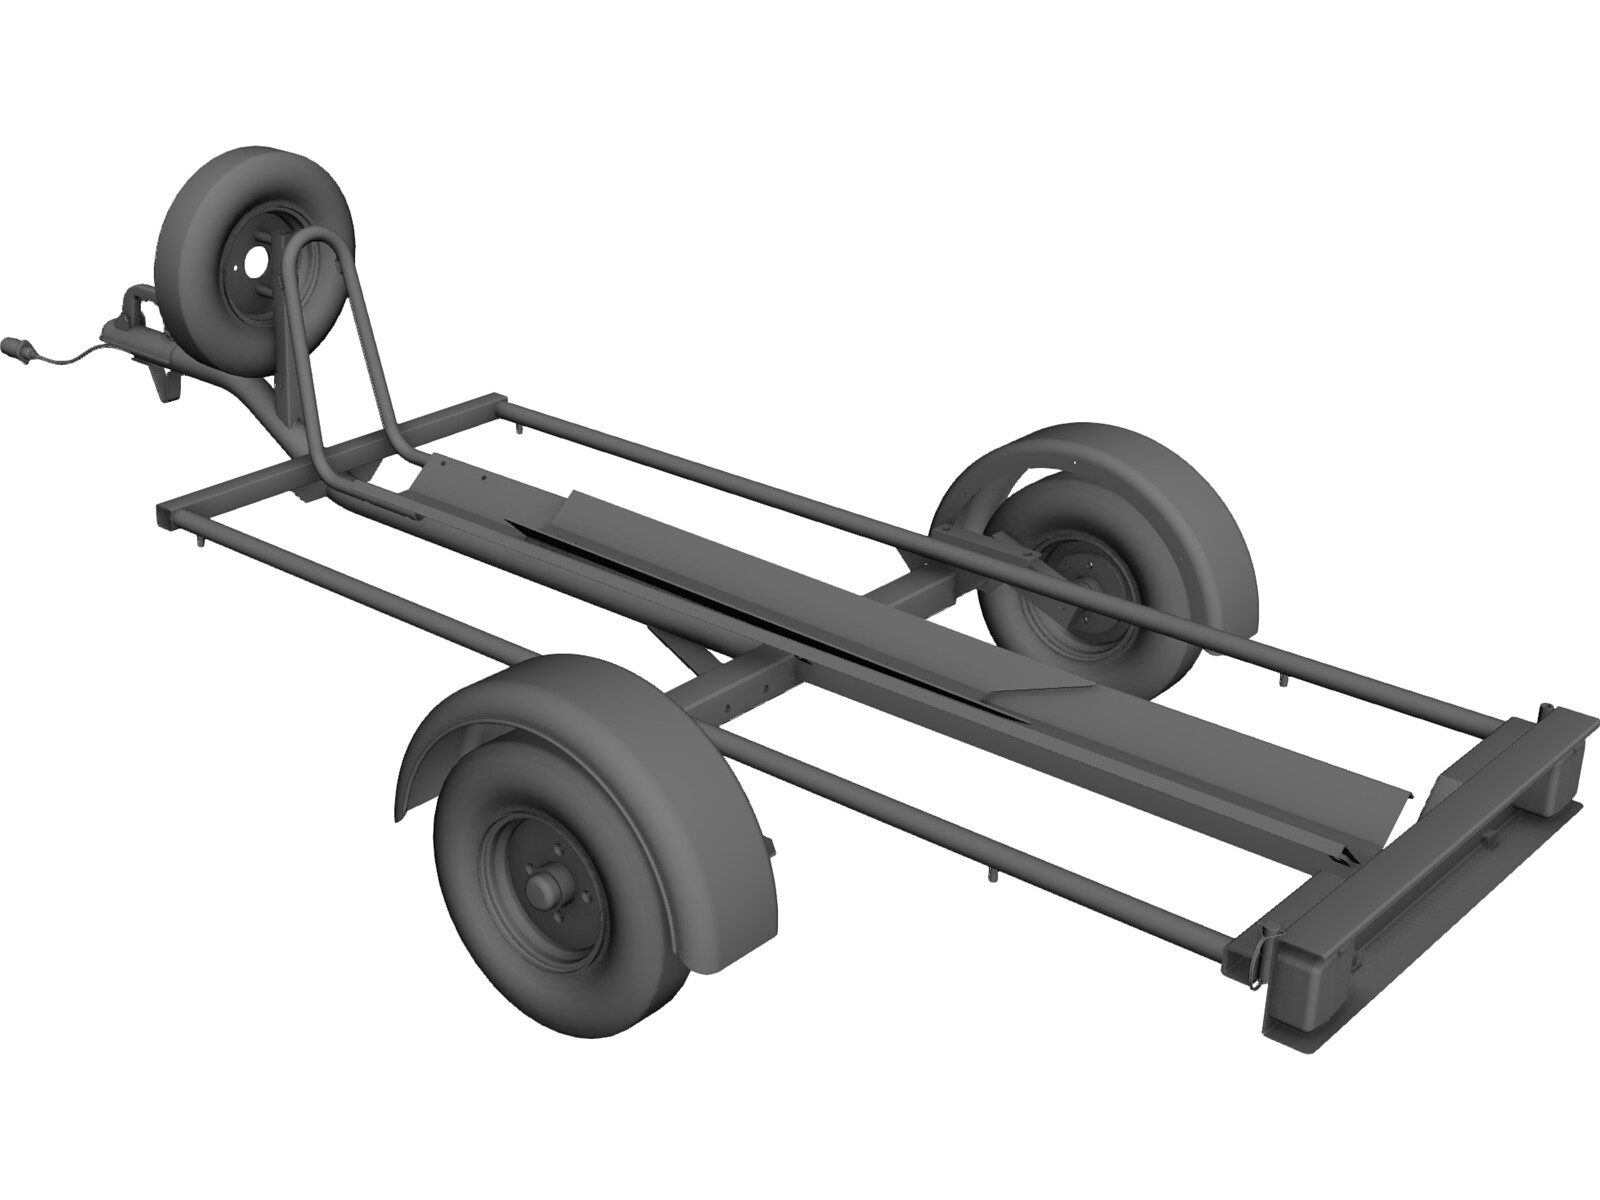 Motorcycle Trailer 3D CAD Model